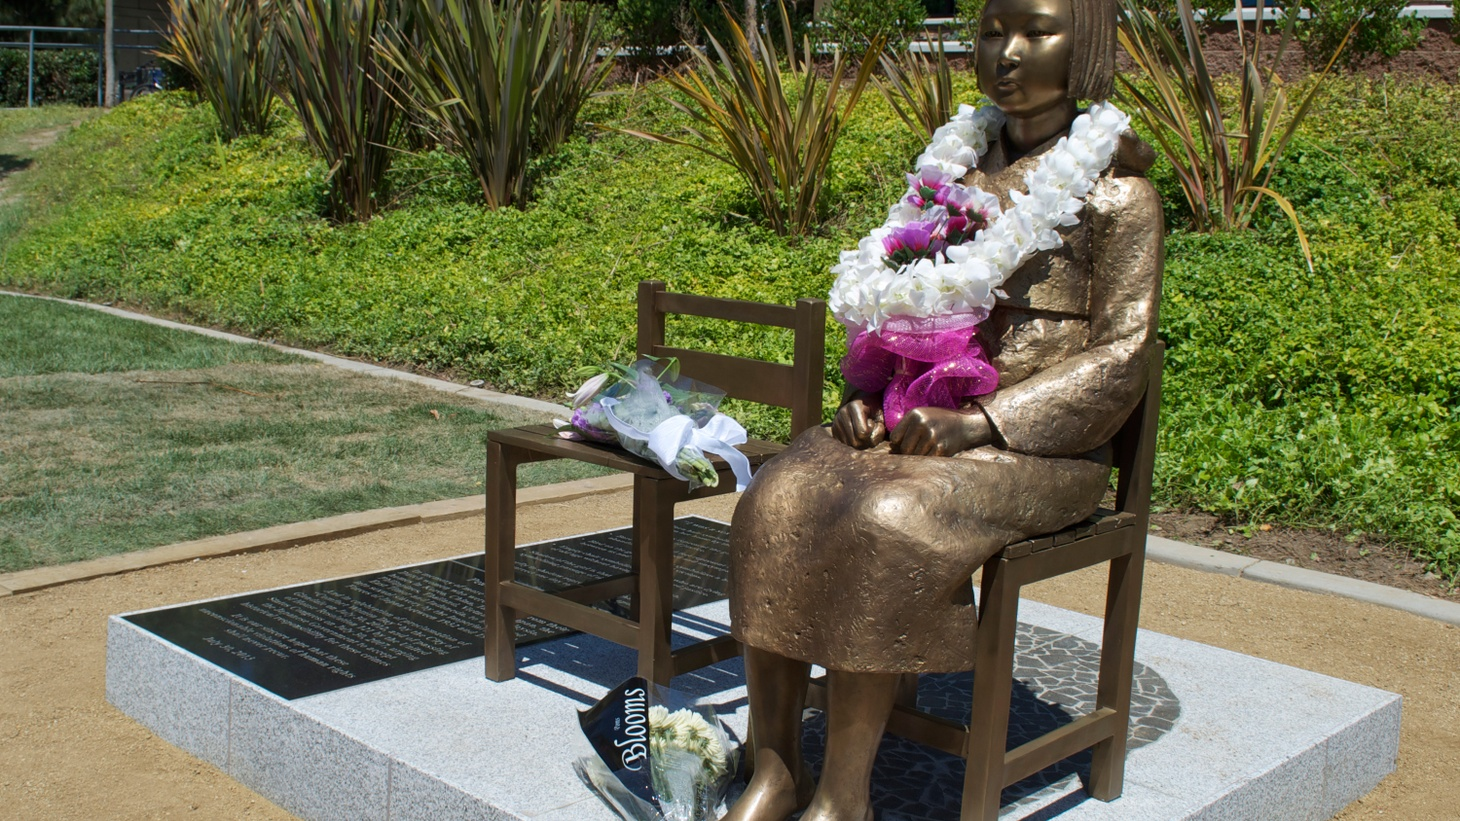 """Glendale is one of seven suburban communities with a statue memorializing the so-called """"comfort women"""" abducted for use by Japanese soldiers during World War II. Now San Francisco may become the first major American city with a similar monument. But the proposal is creating international controversy."""